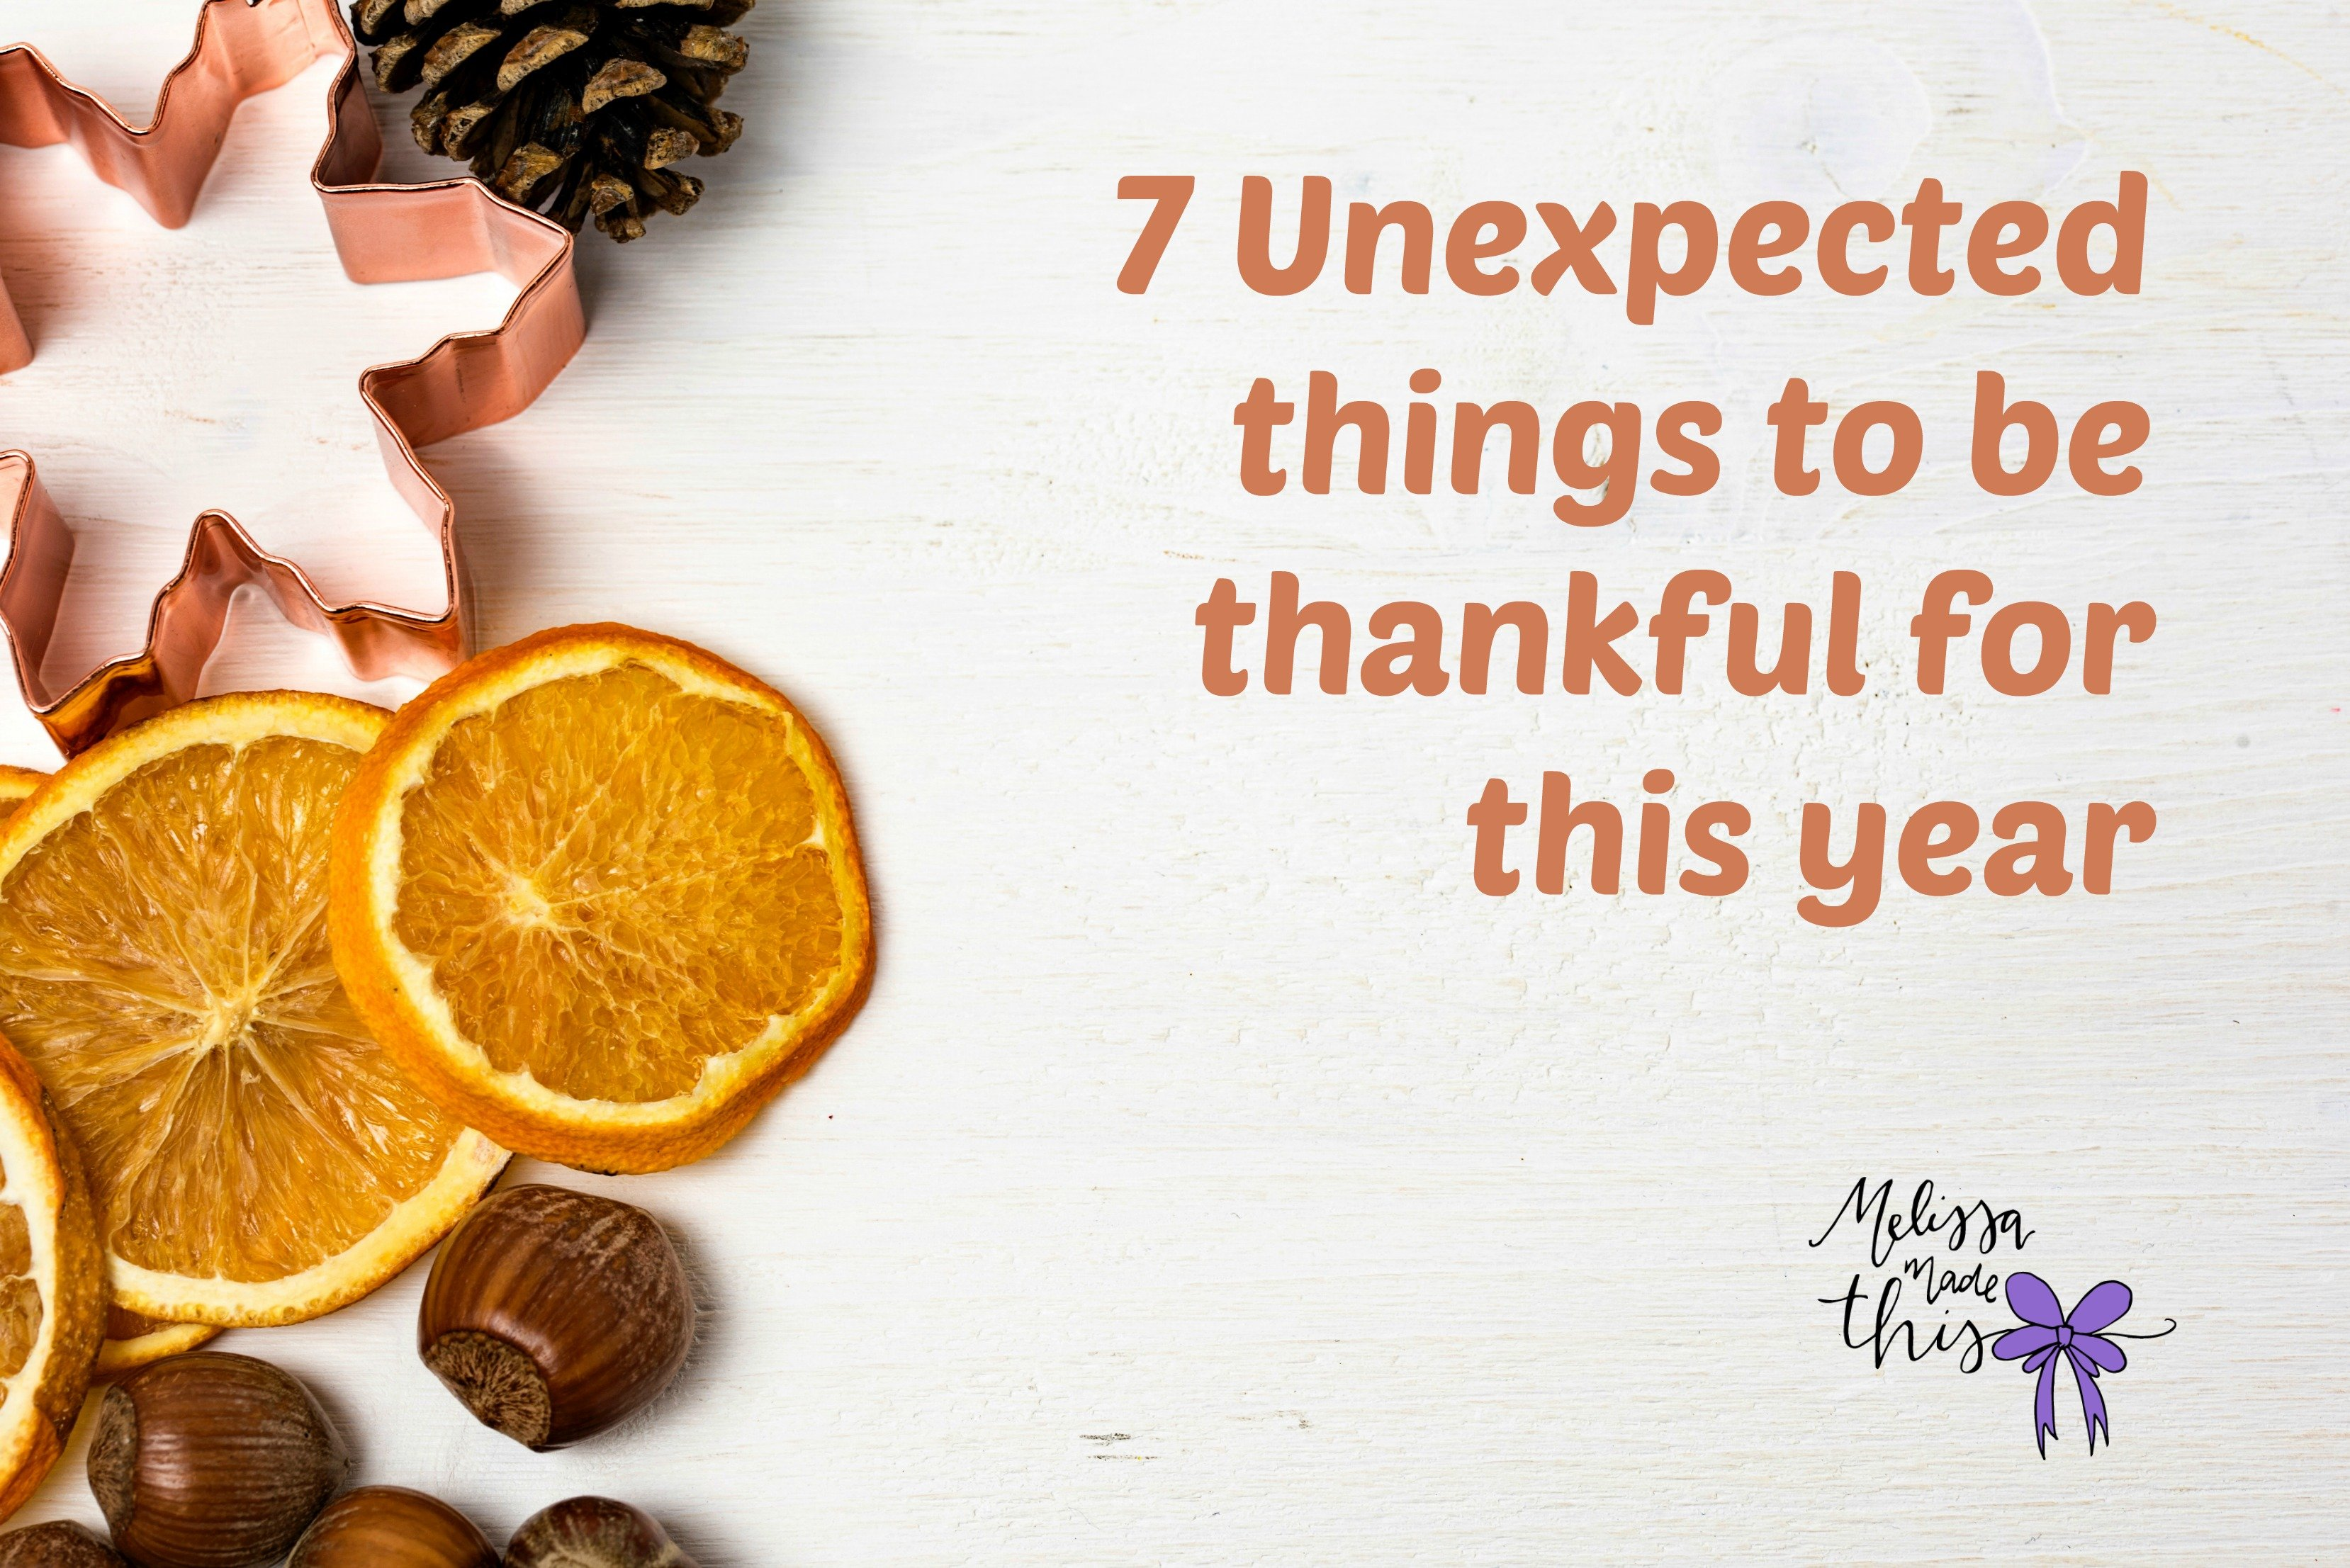 7 Unexpected things to be thankful for this year